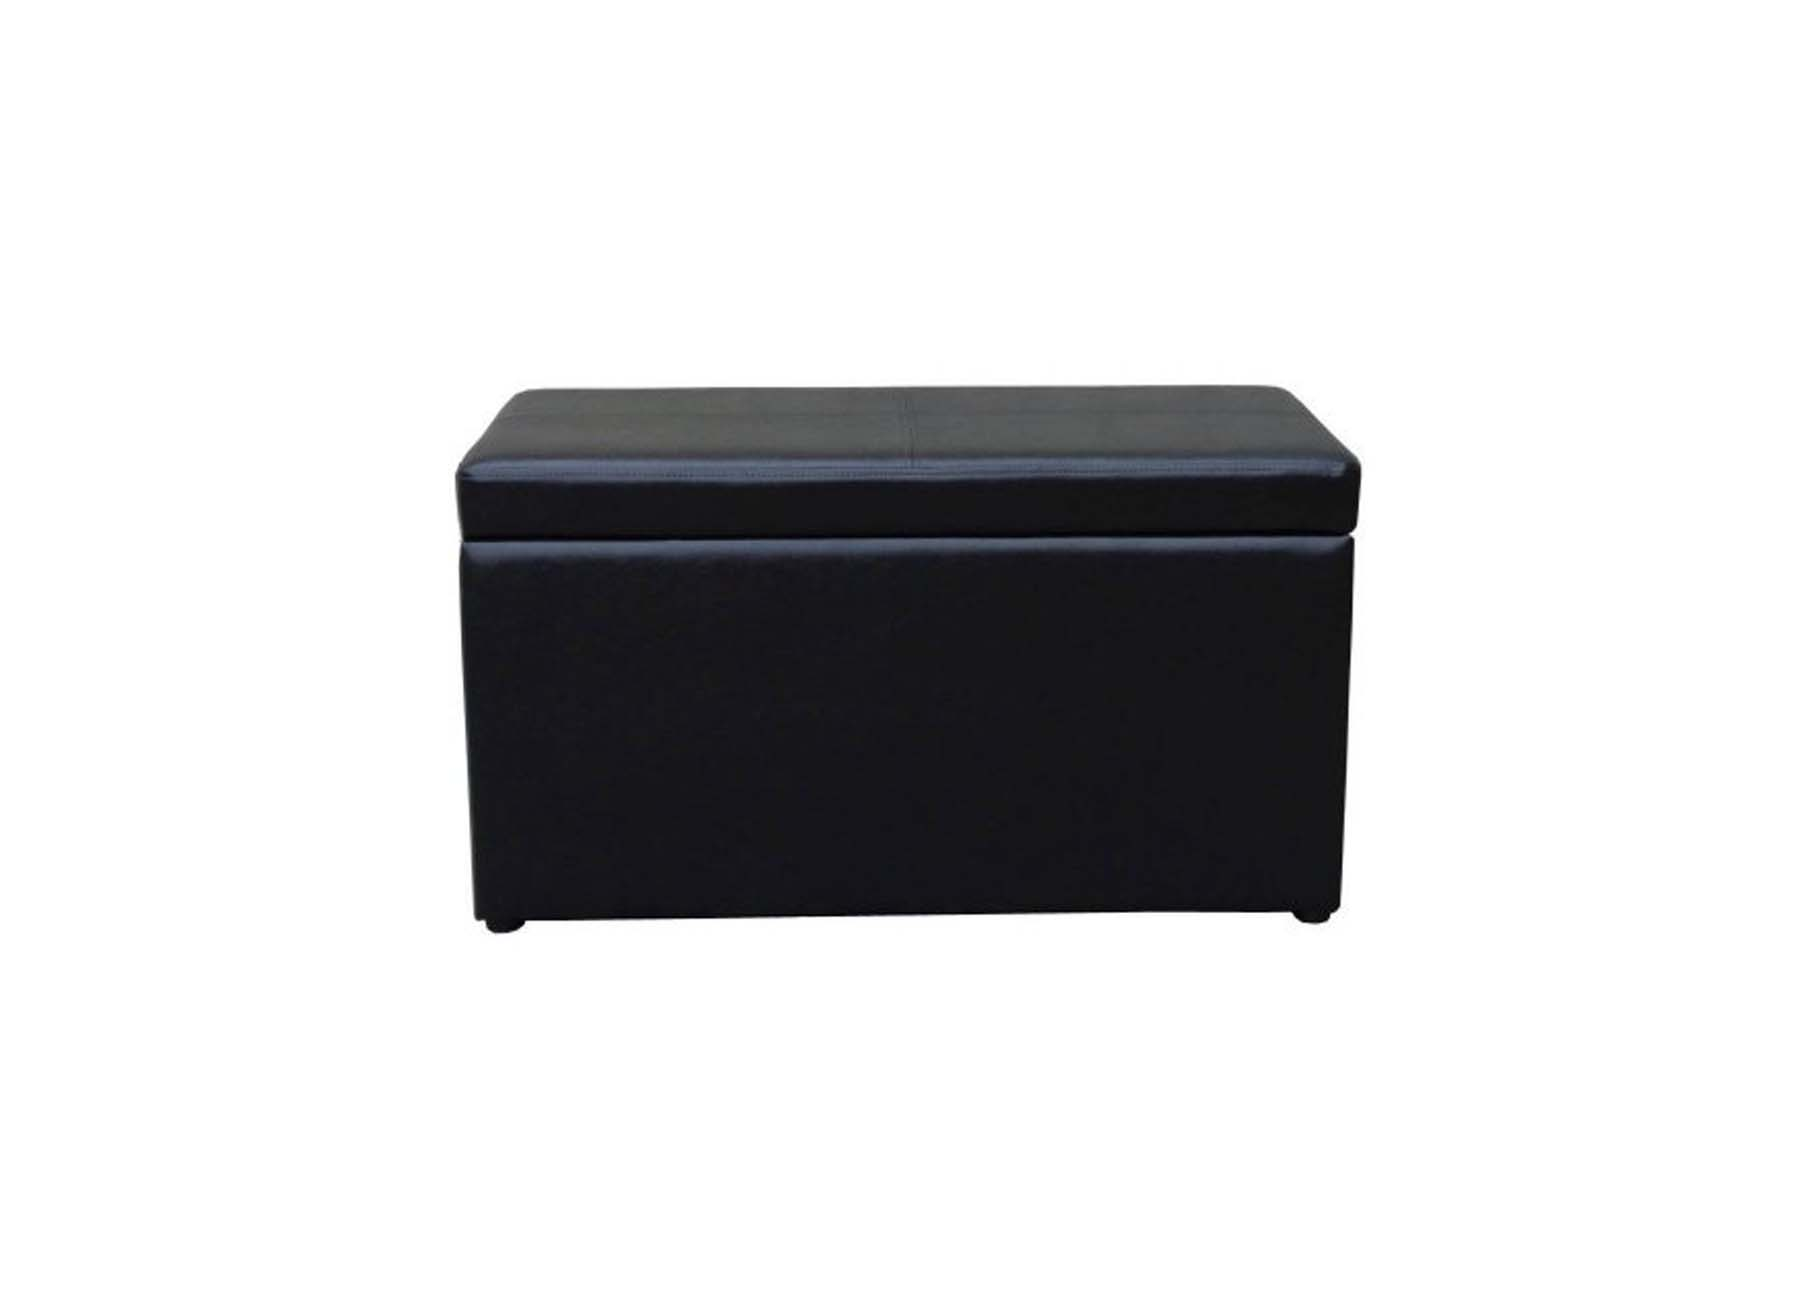 Better Homes and Gardens 30 Inch Hinged Storage Ottoman for $24.00 at Walmart  sc 1 st  The Best Deals Club & Better Homes and Gardens 30 Inch Hinged Storage Ottoman for $24.00 ...